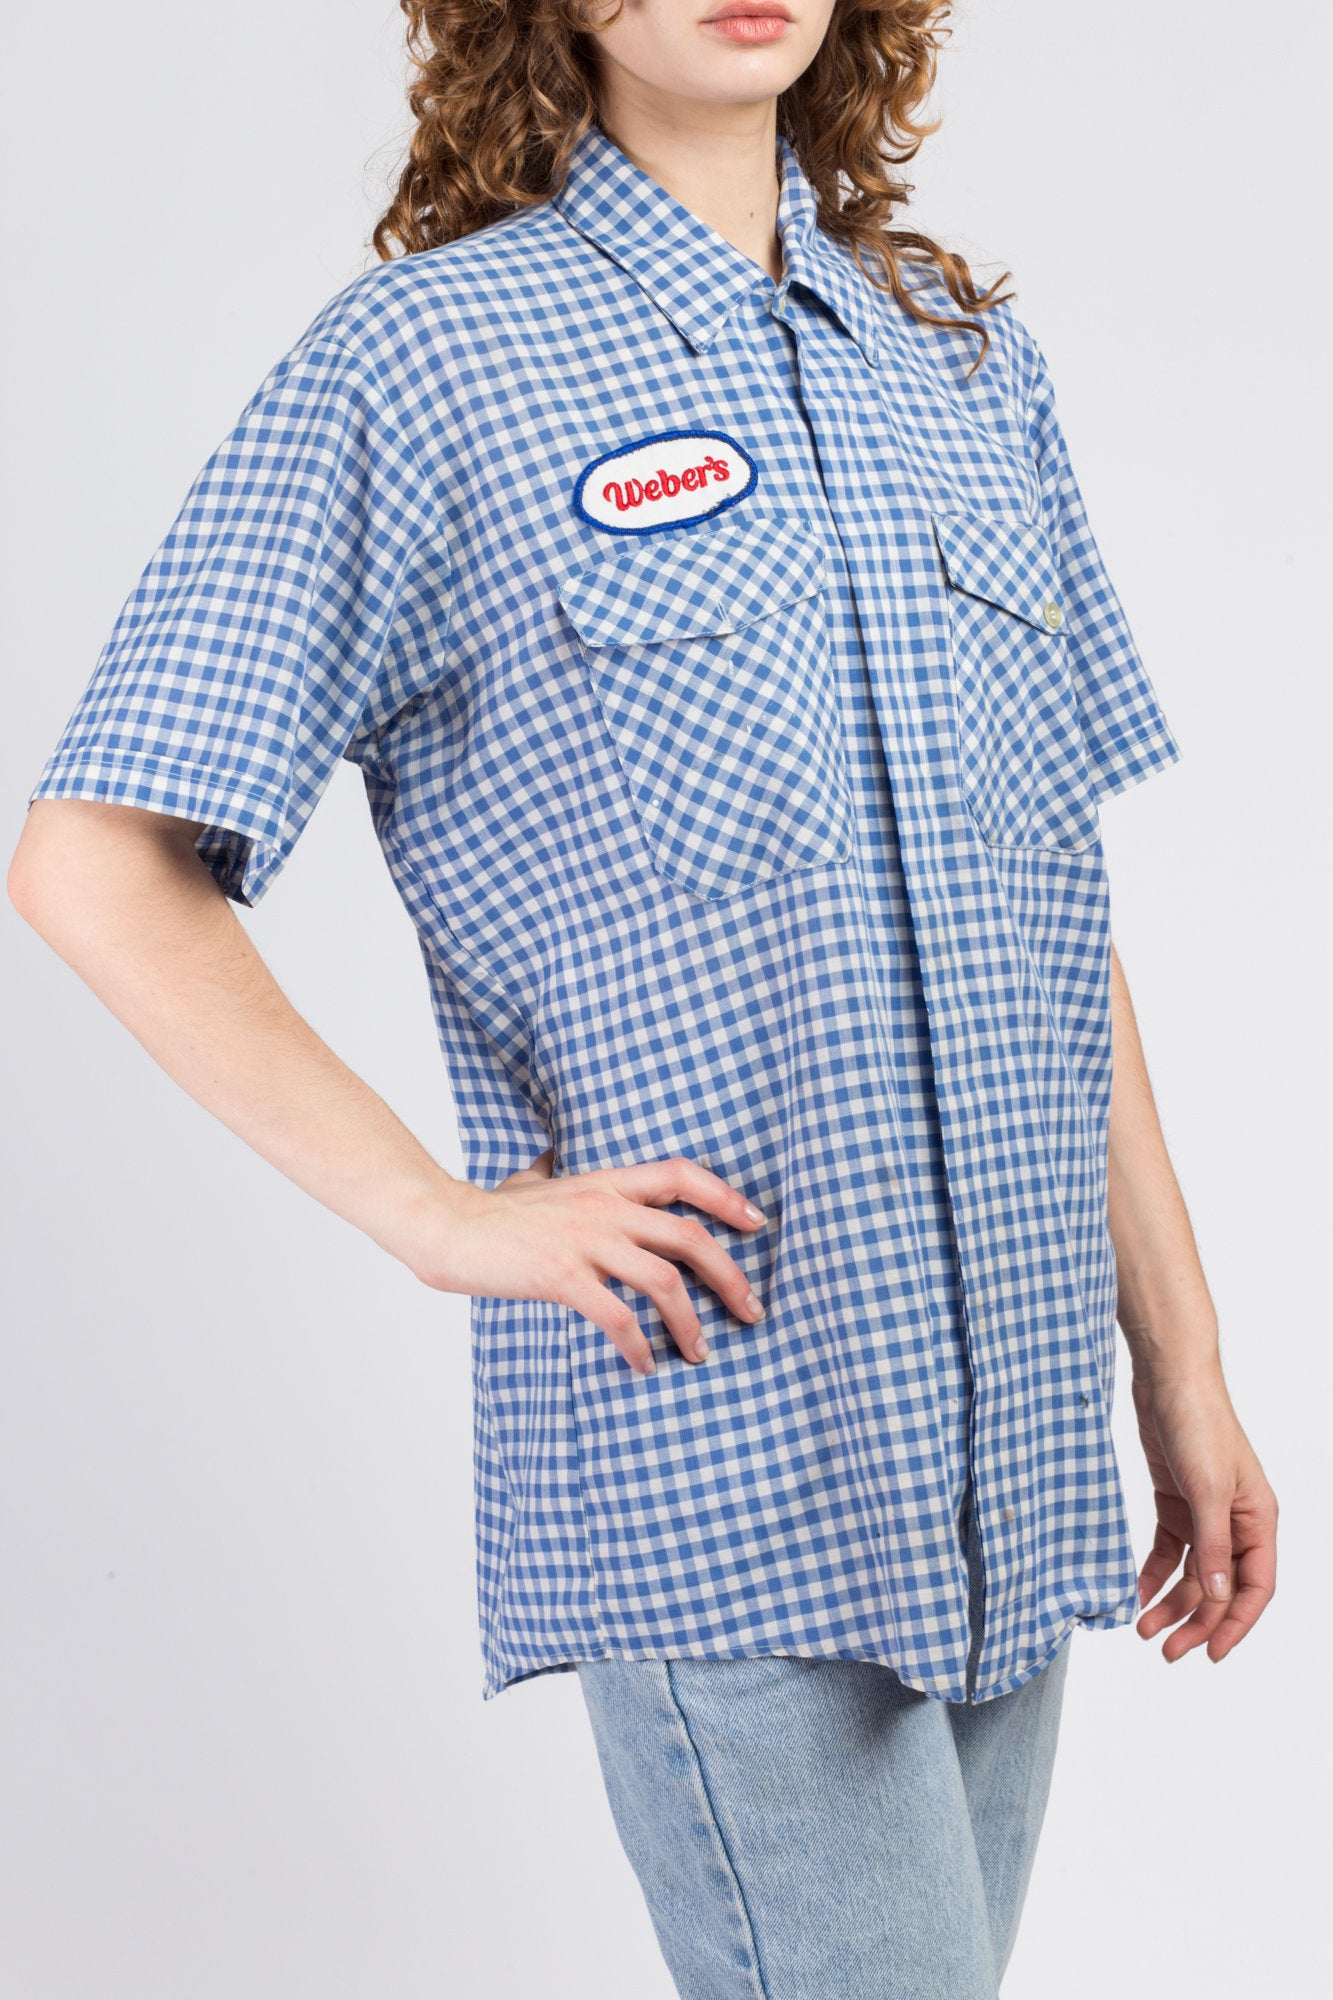 70s Gingham Button Up Workwear Shirt - Men's Large